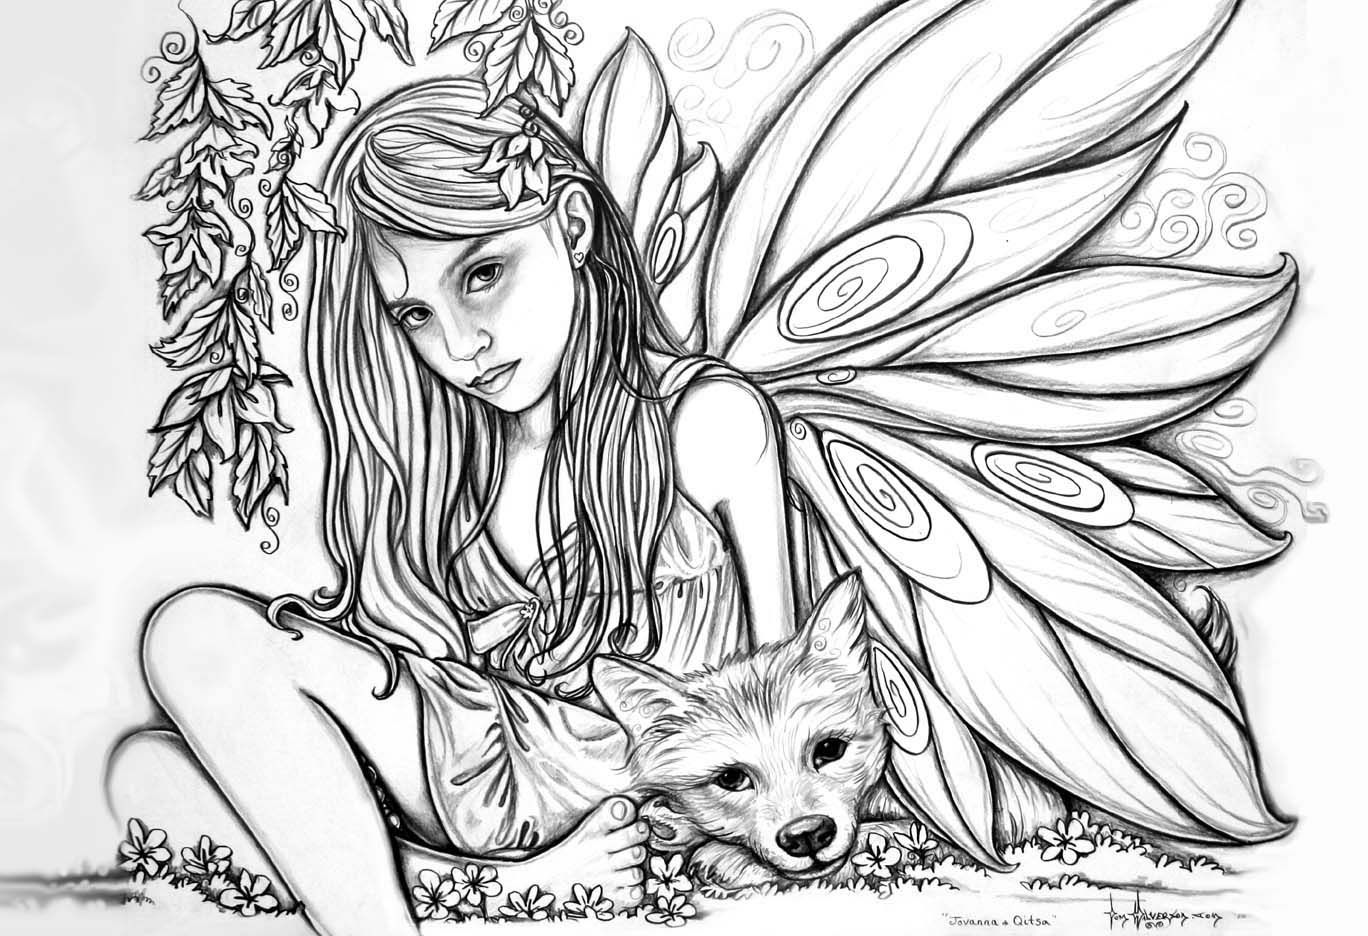 coloring pictures for teenagers cool coloring free coloring pages for teens for 1000 teenagers for coloring pictures